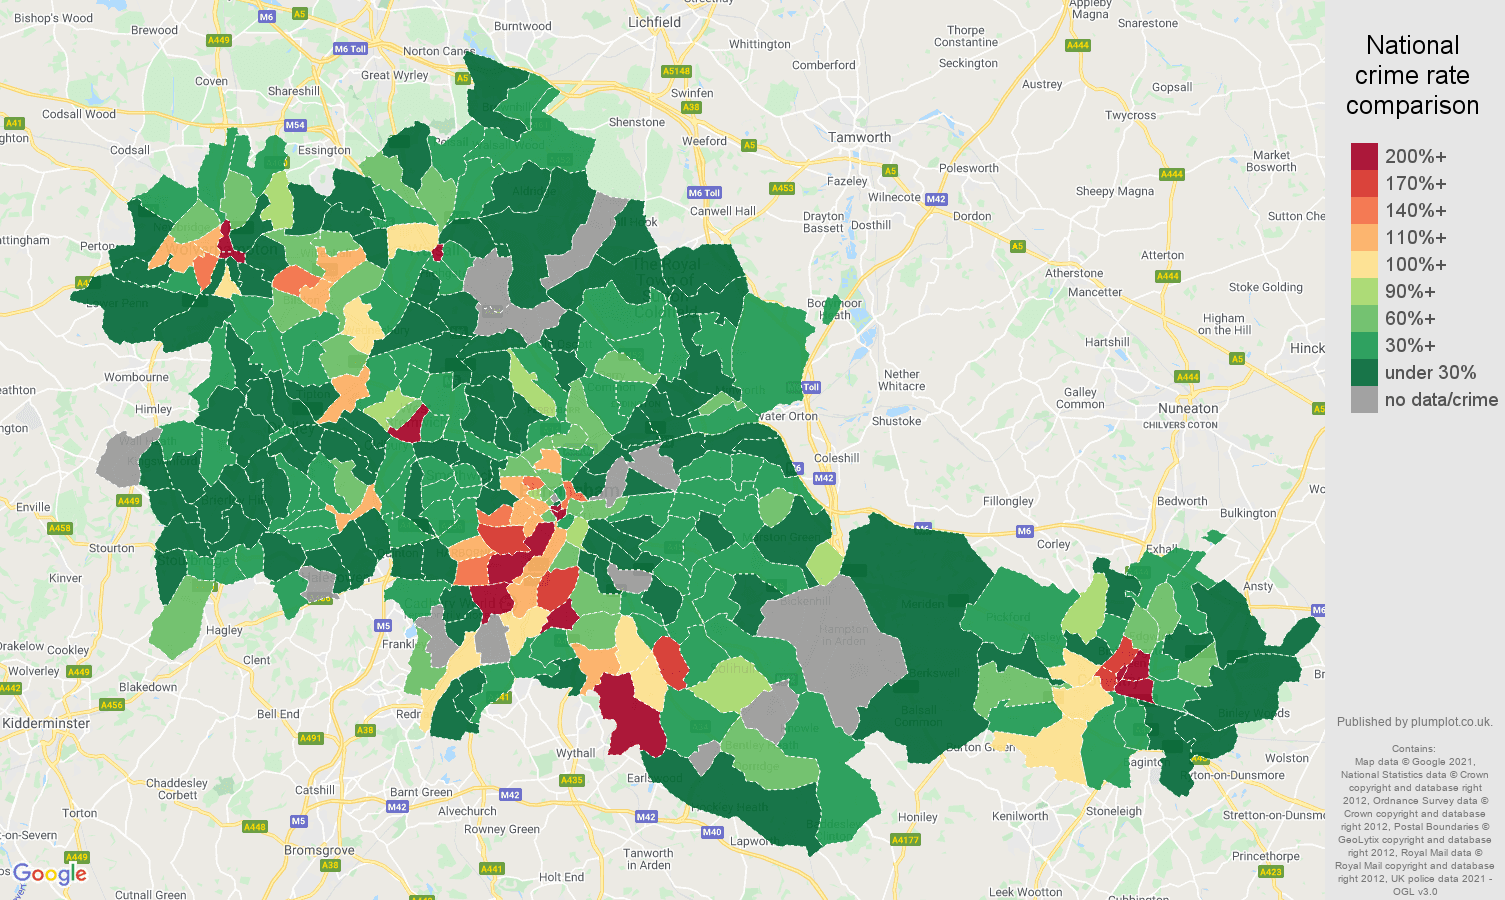 West Midlands county bicycle theft crime rate comparison map